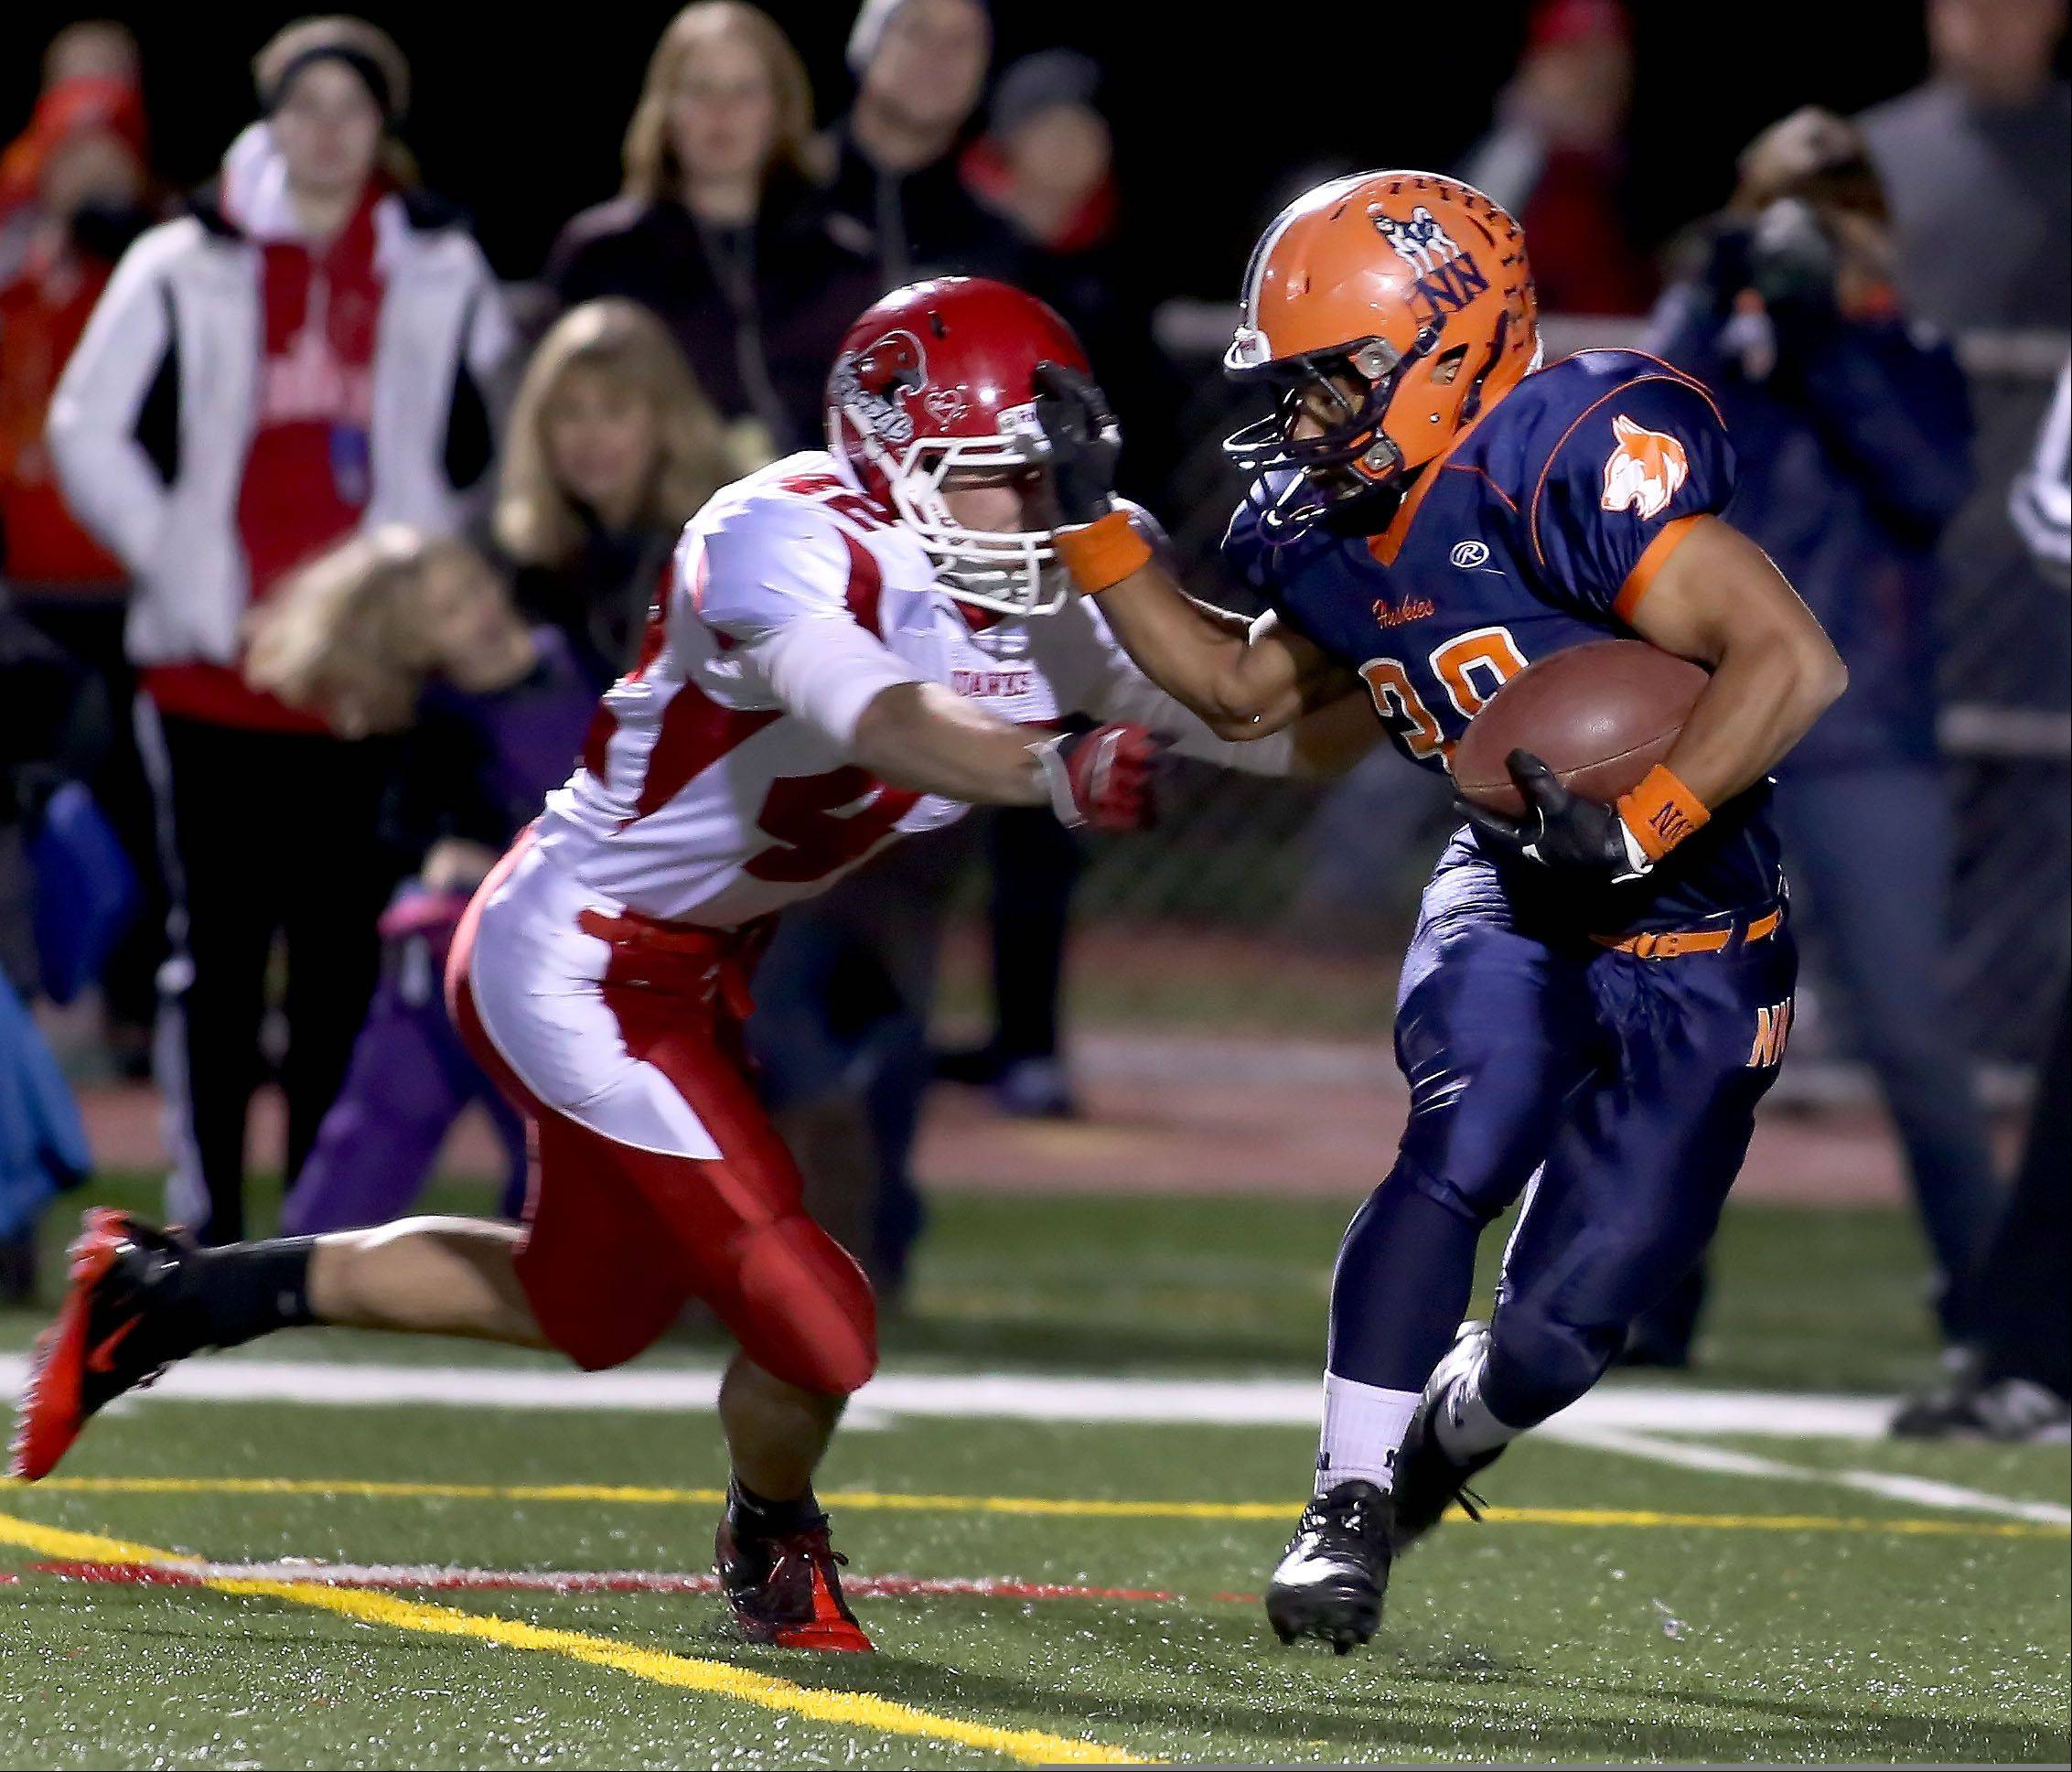 Daniel Spaccapaniccia of Naperville Central moves in to tackle Adam Milsap of Naperville North, right, during football action on Friday at North Central College.